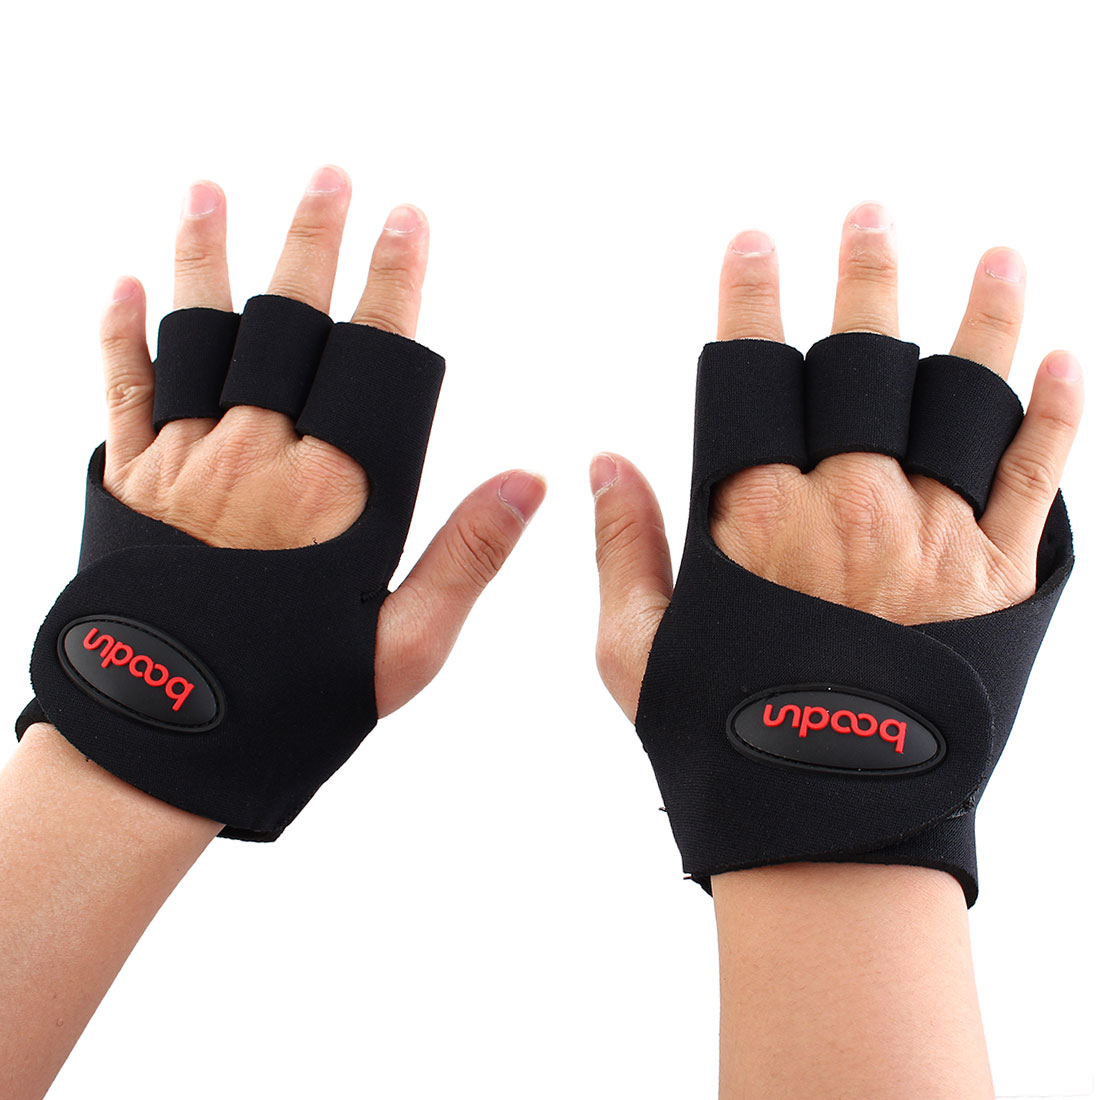 Boodun Authorized Outdoor Sports Cycling Gym Exercise Weight Lifting Non-slip Rubber Padding Training Gloves Size M Pair